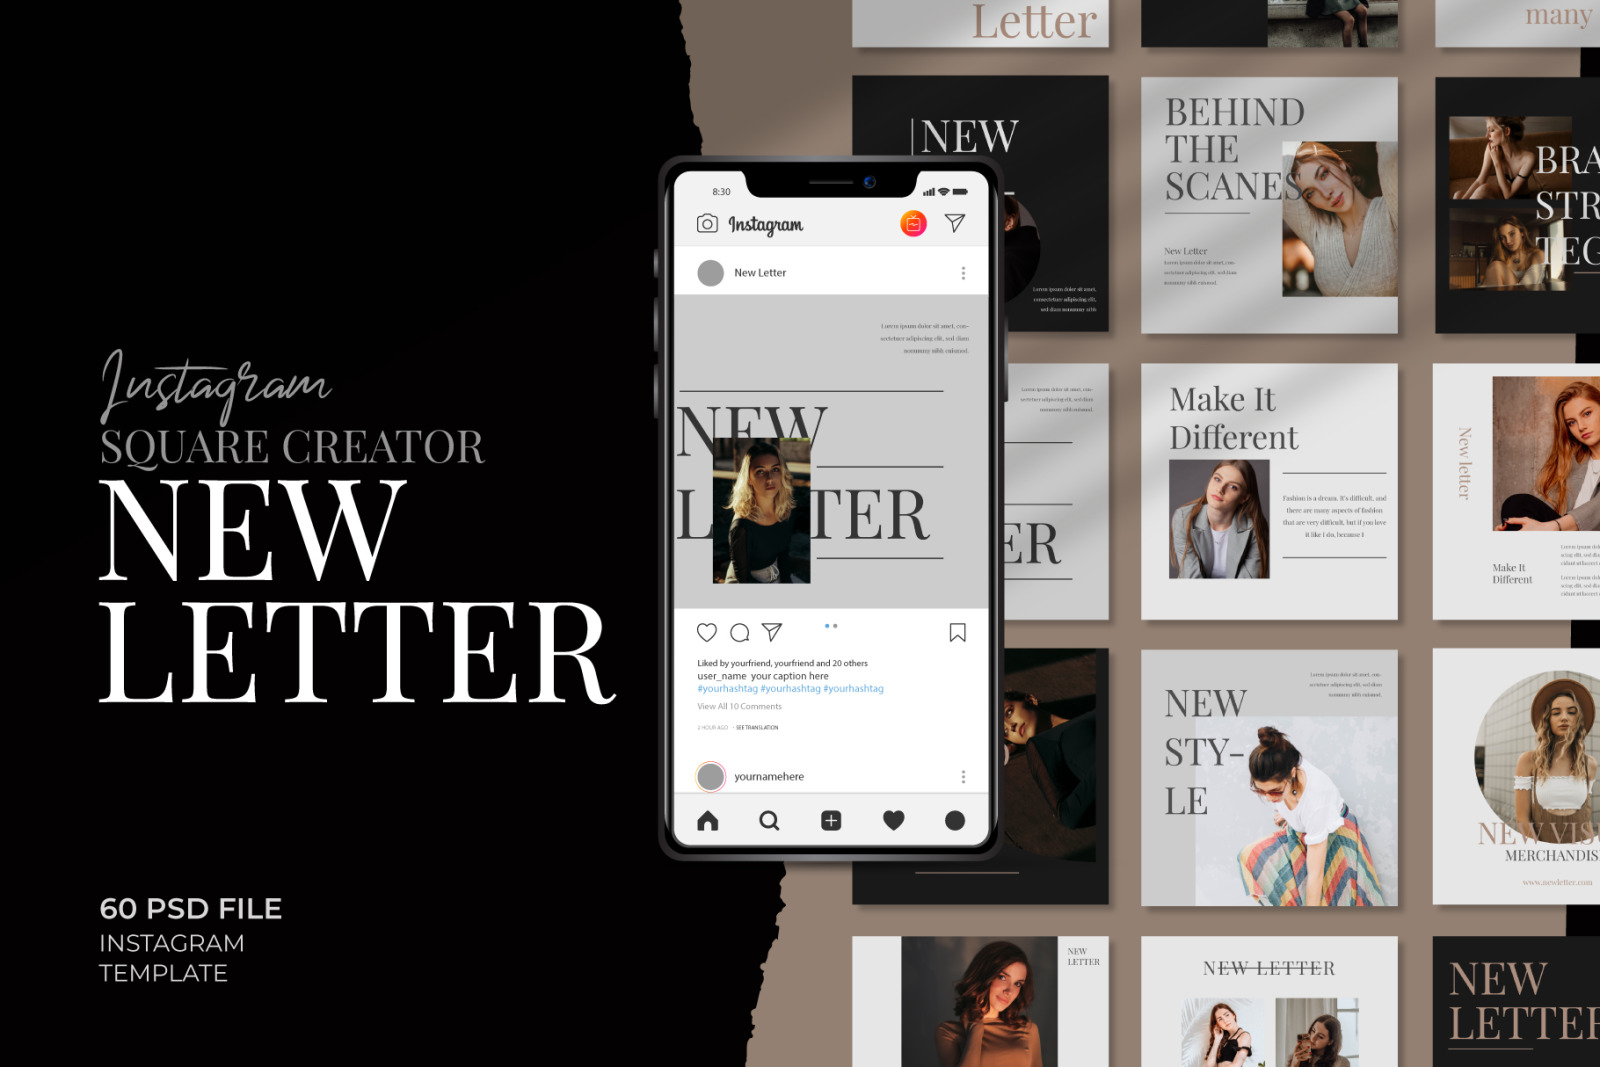 Download New Letter Instagram Post Creator In Social Media Templates On Yellow Images Creative Store Yellowimages Mockups